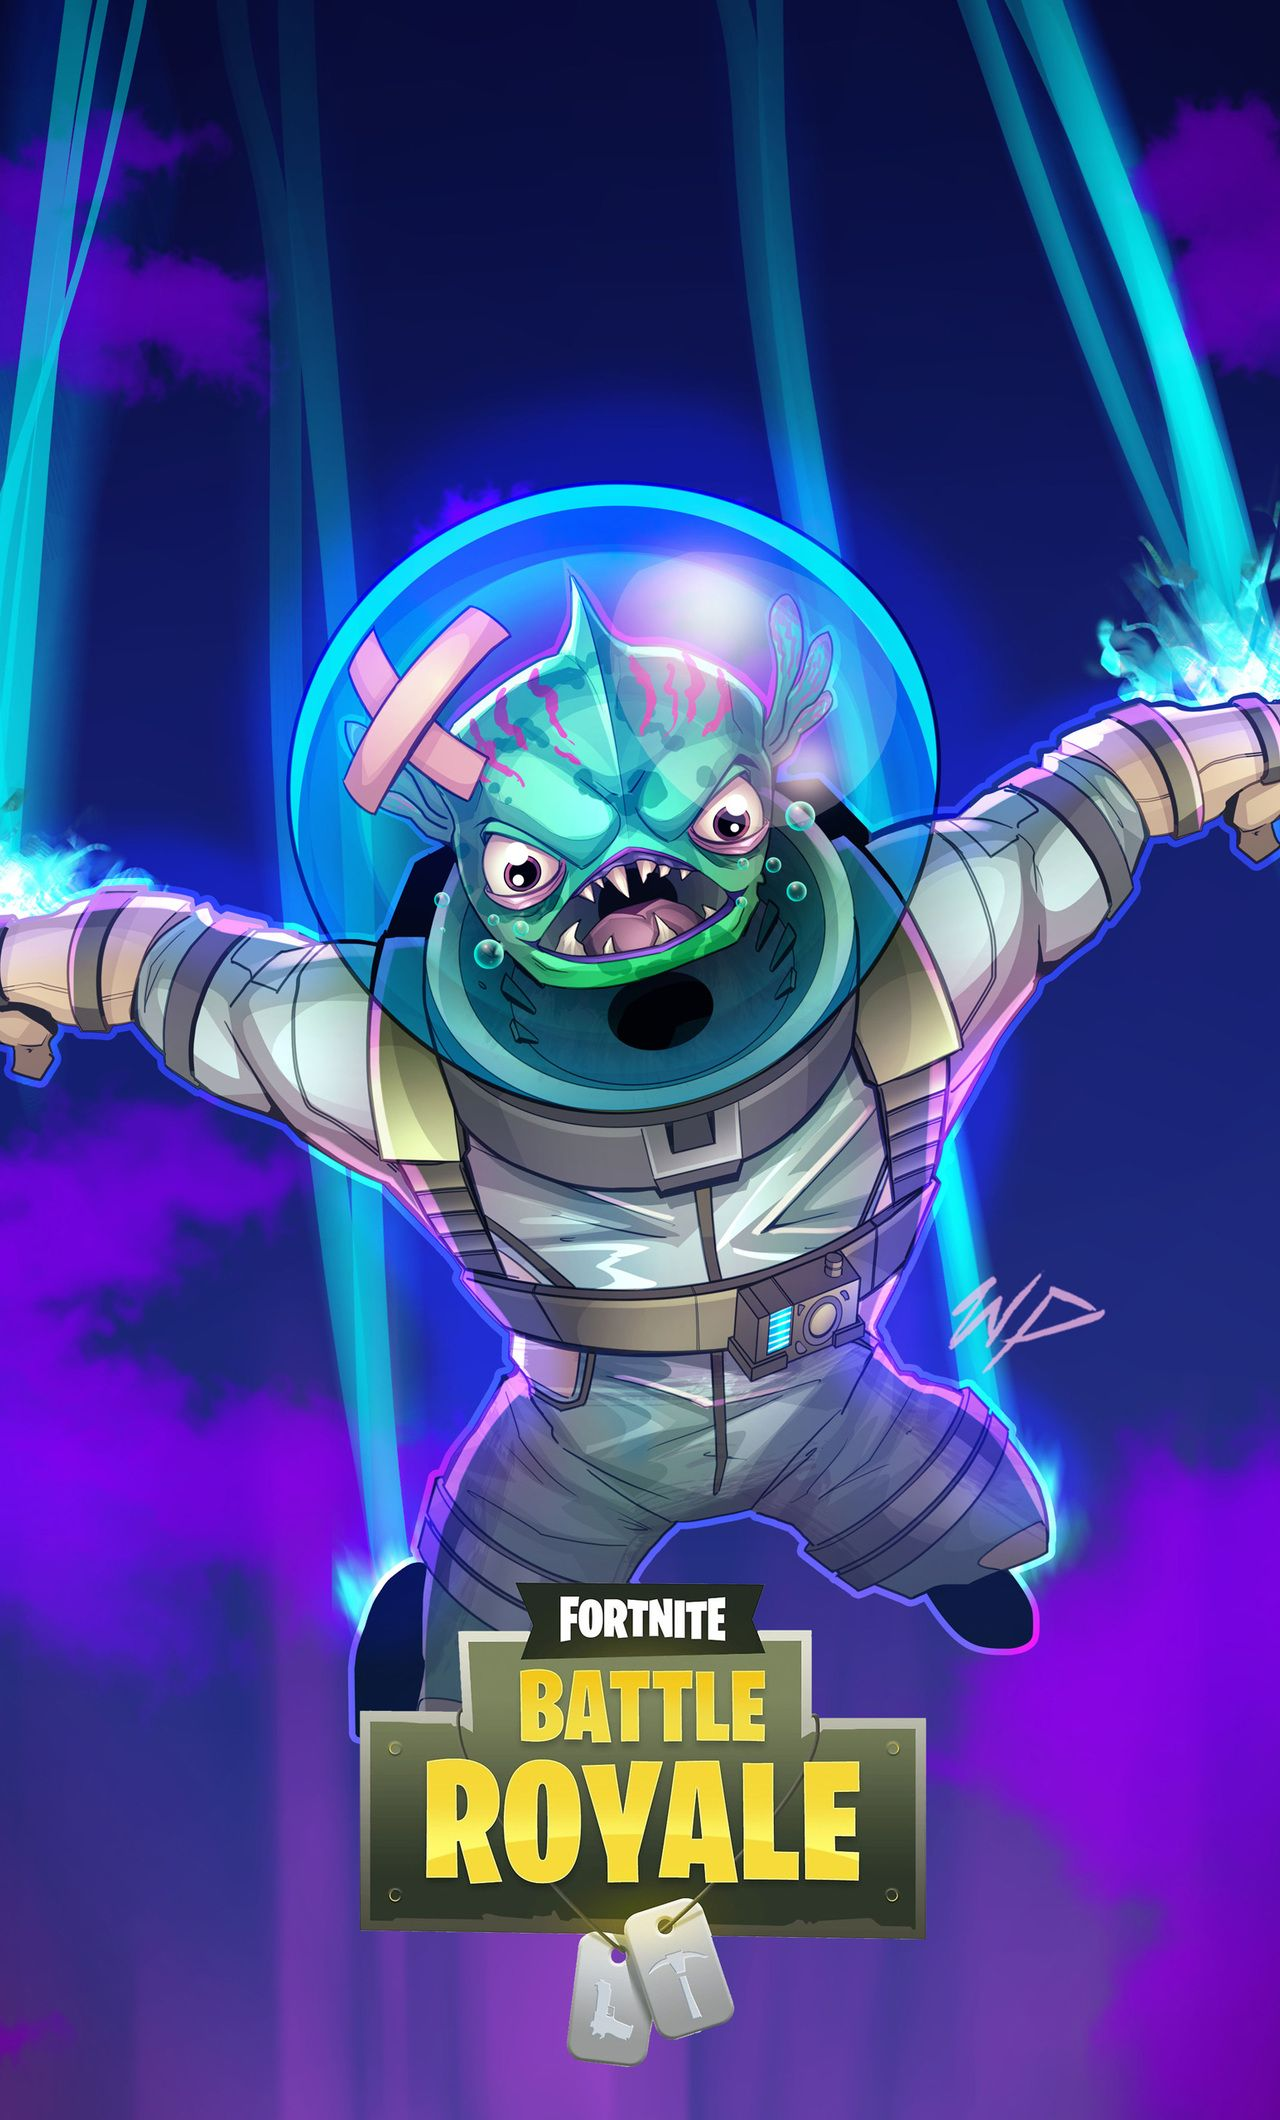 Fortnite 750 Iphone Wallpapers Top Free Fortnite 750 Iphone Backgrounds Wallpaperaccess